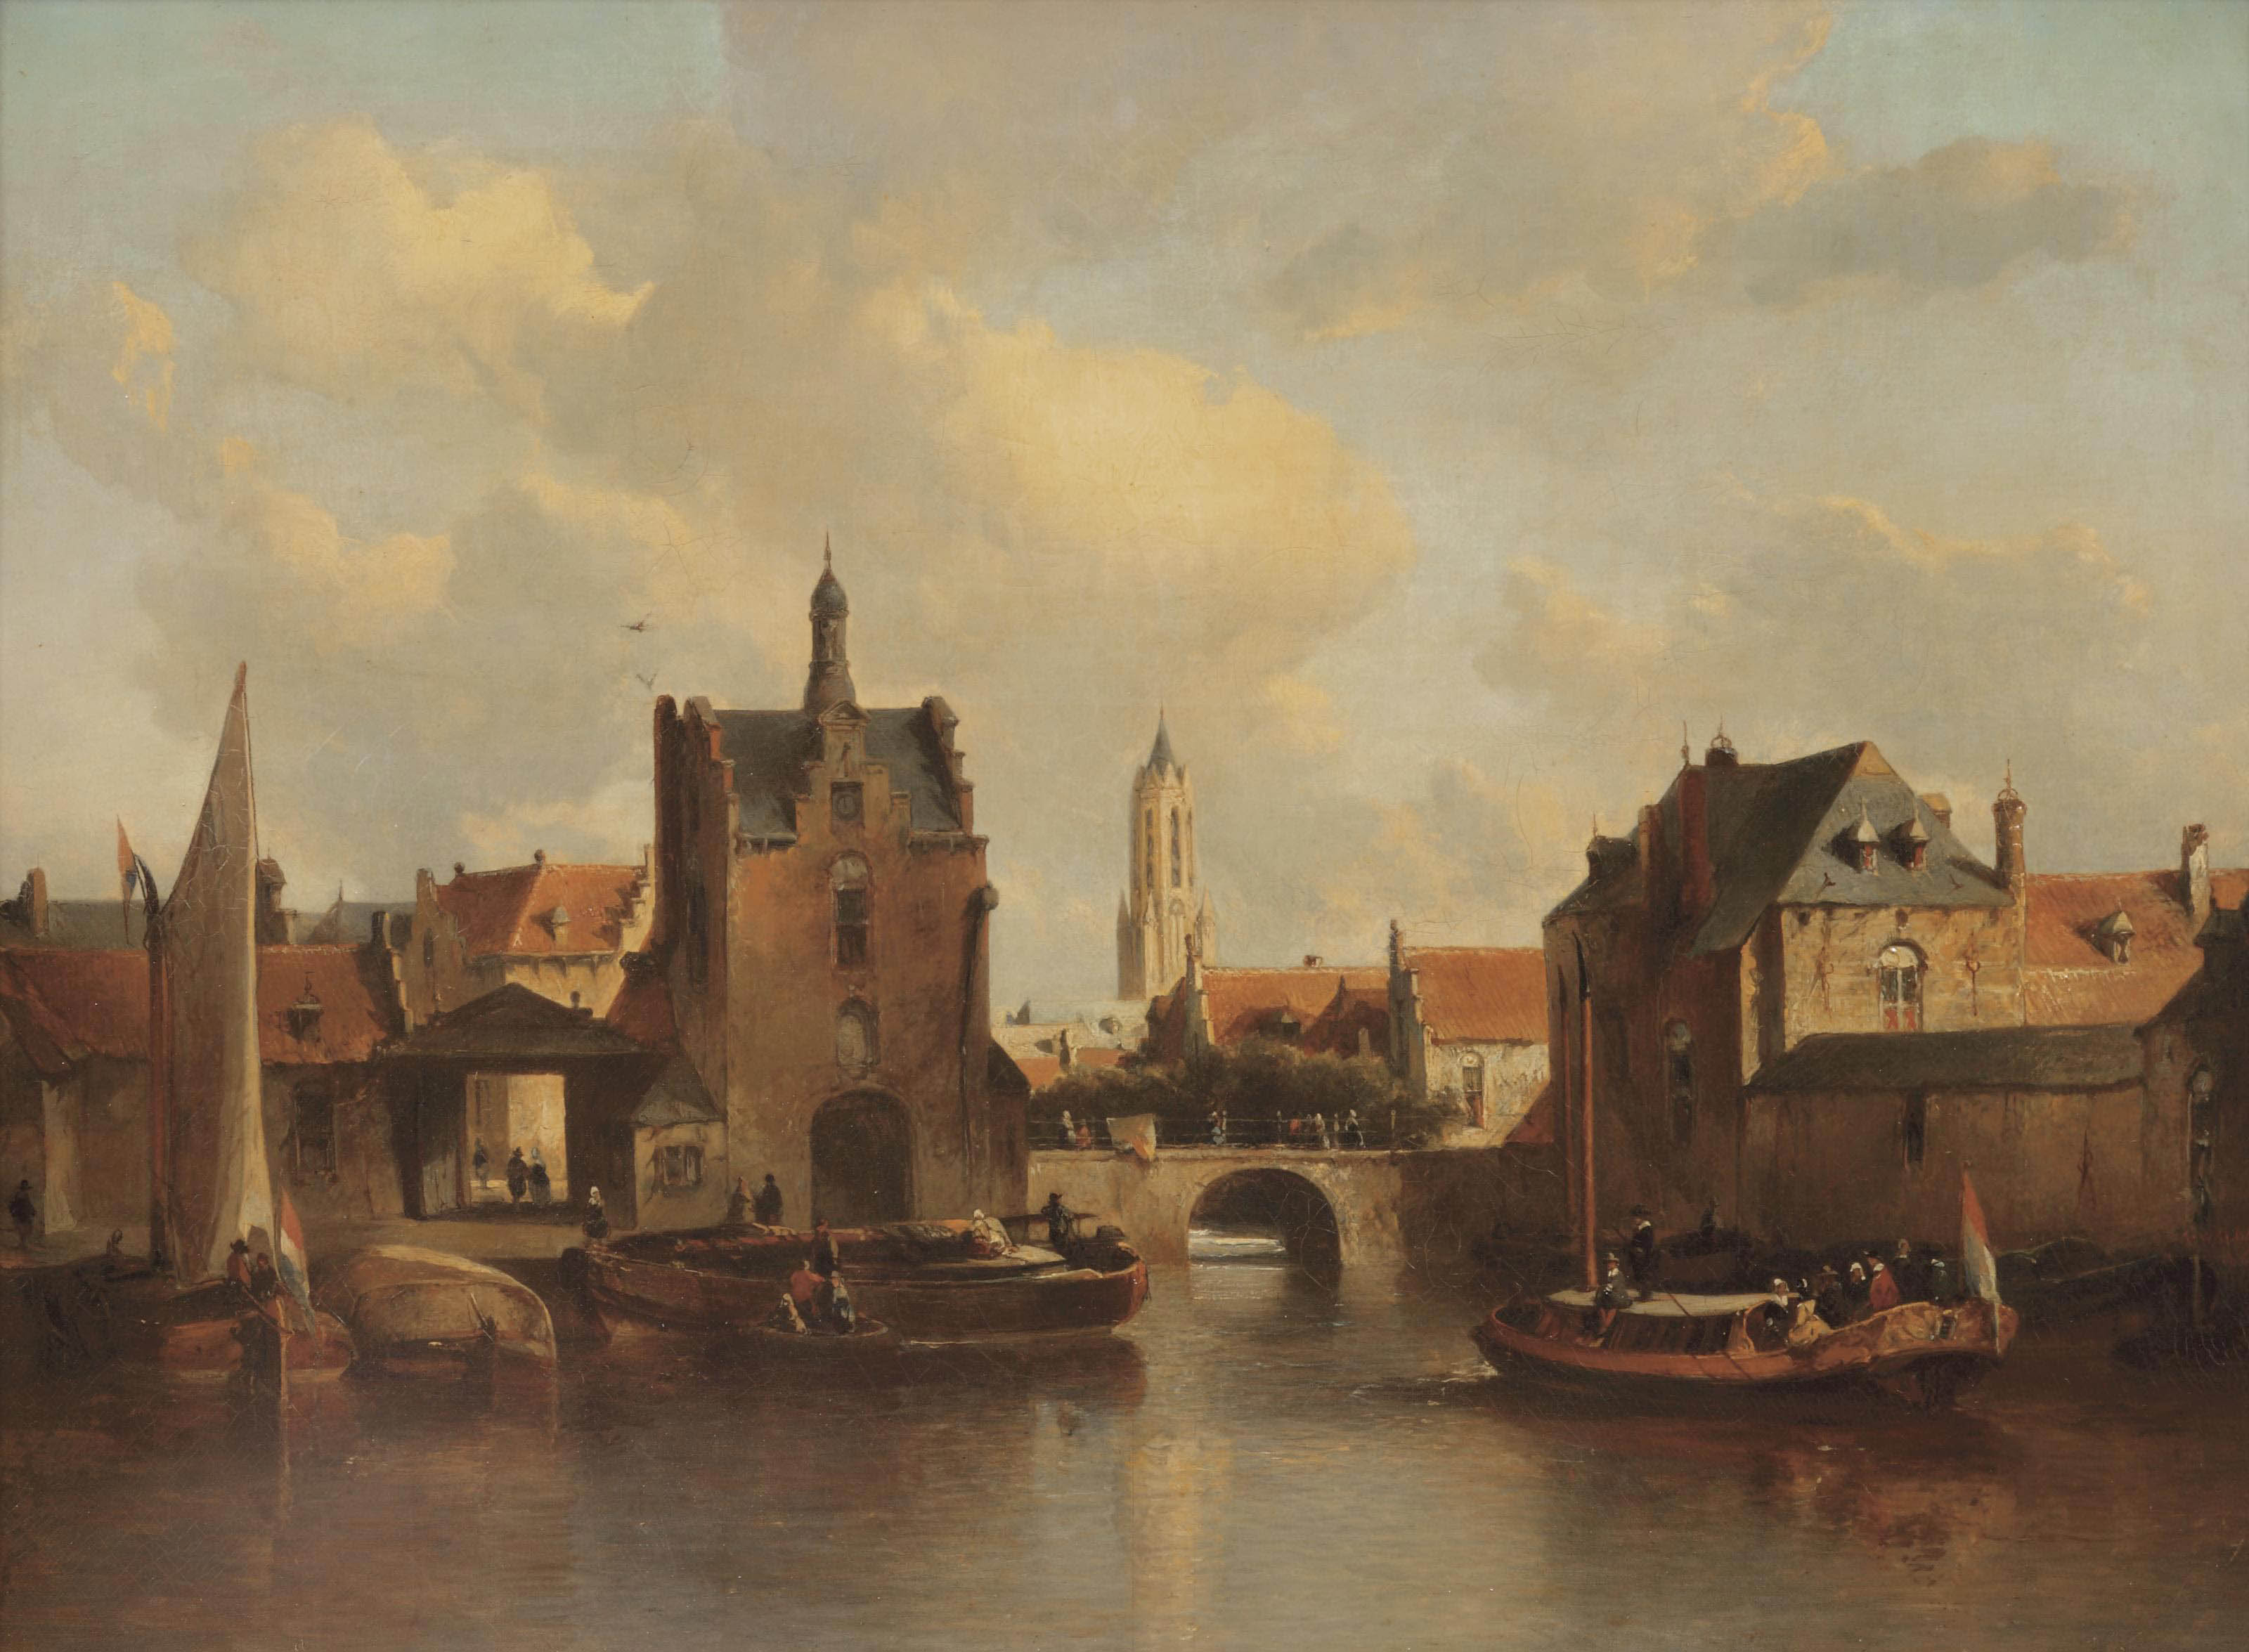 A view of Delft with the Rotterdamse poort, the Schiedamse poort and the Kethel poort